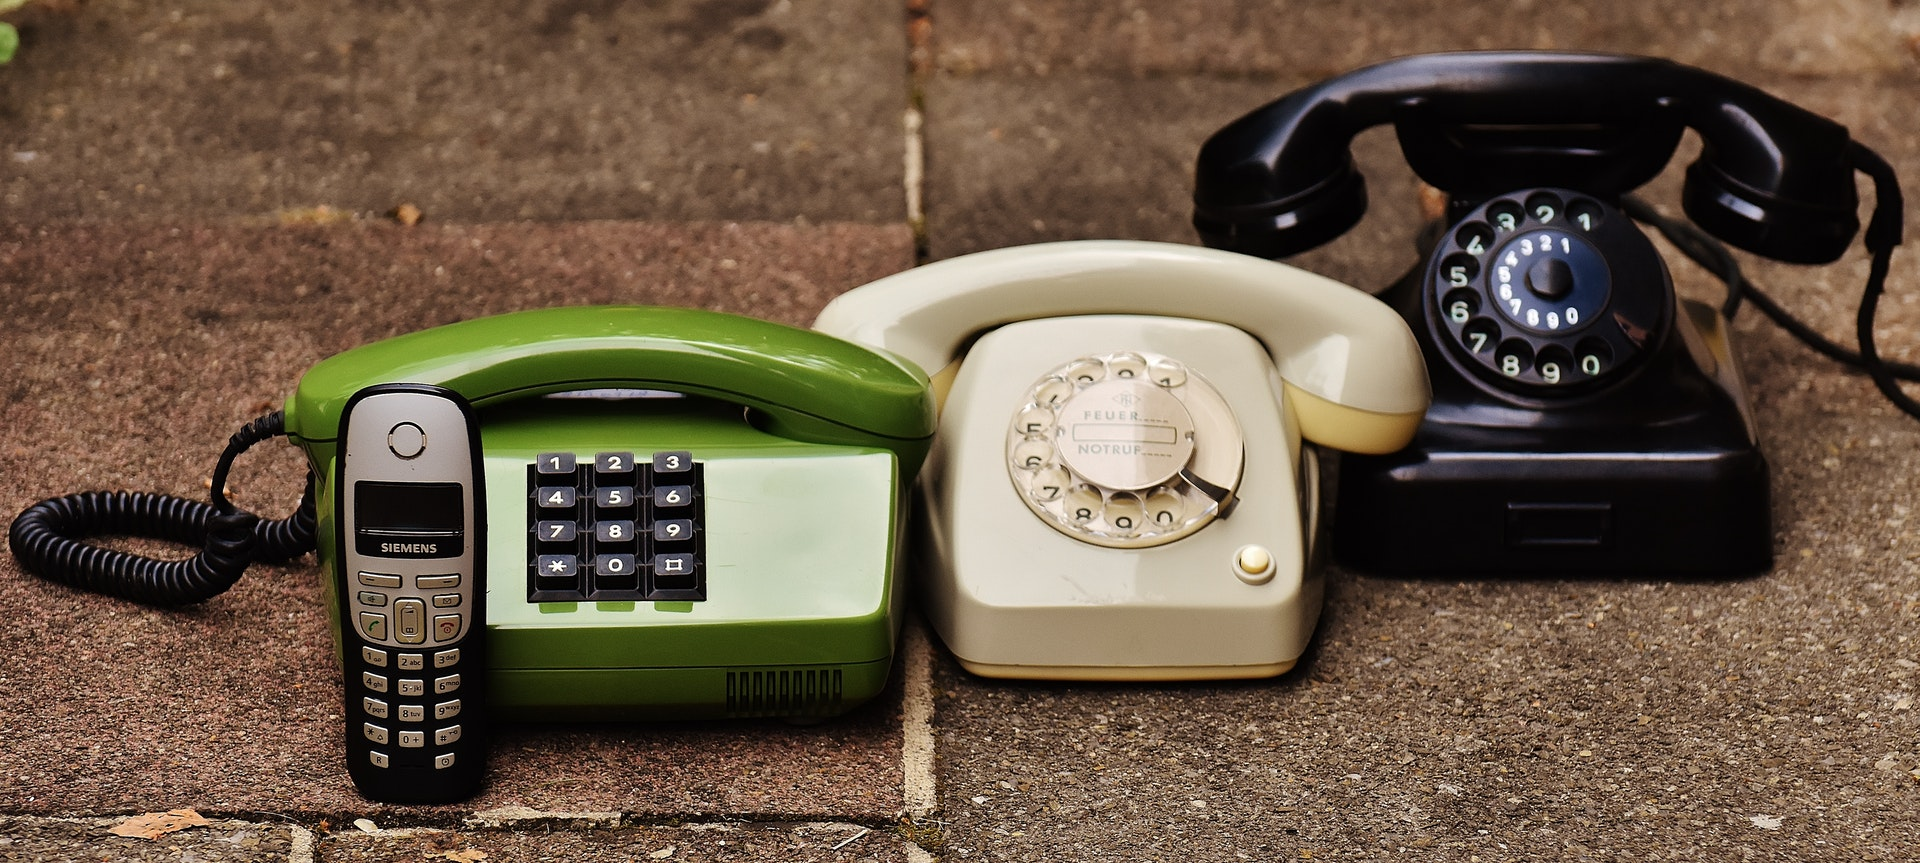 5 reasons your phone won't ring